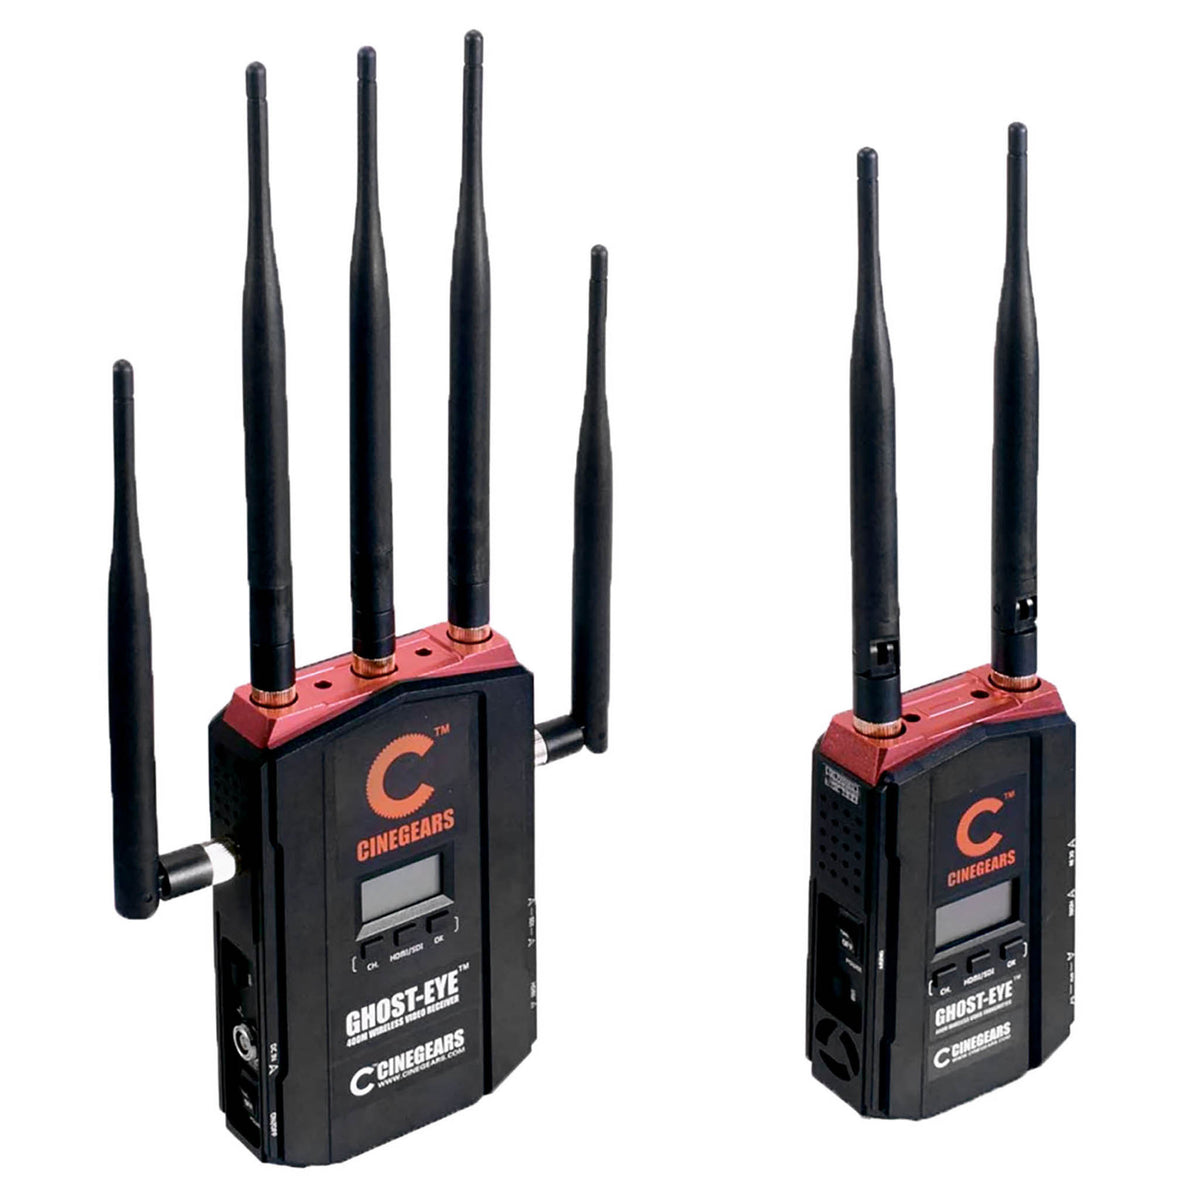 Cinegears Ghost-Eye 400M Wireless HD Video Transmitter